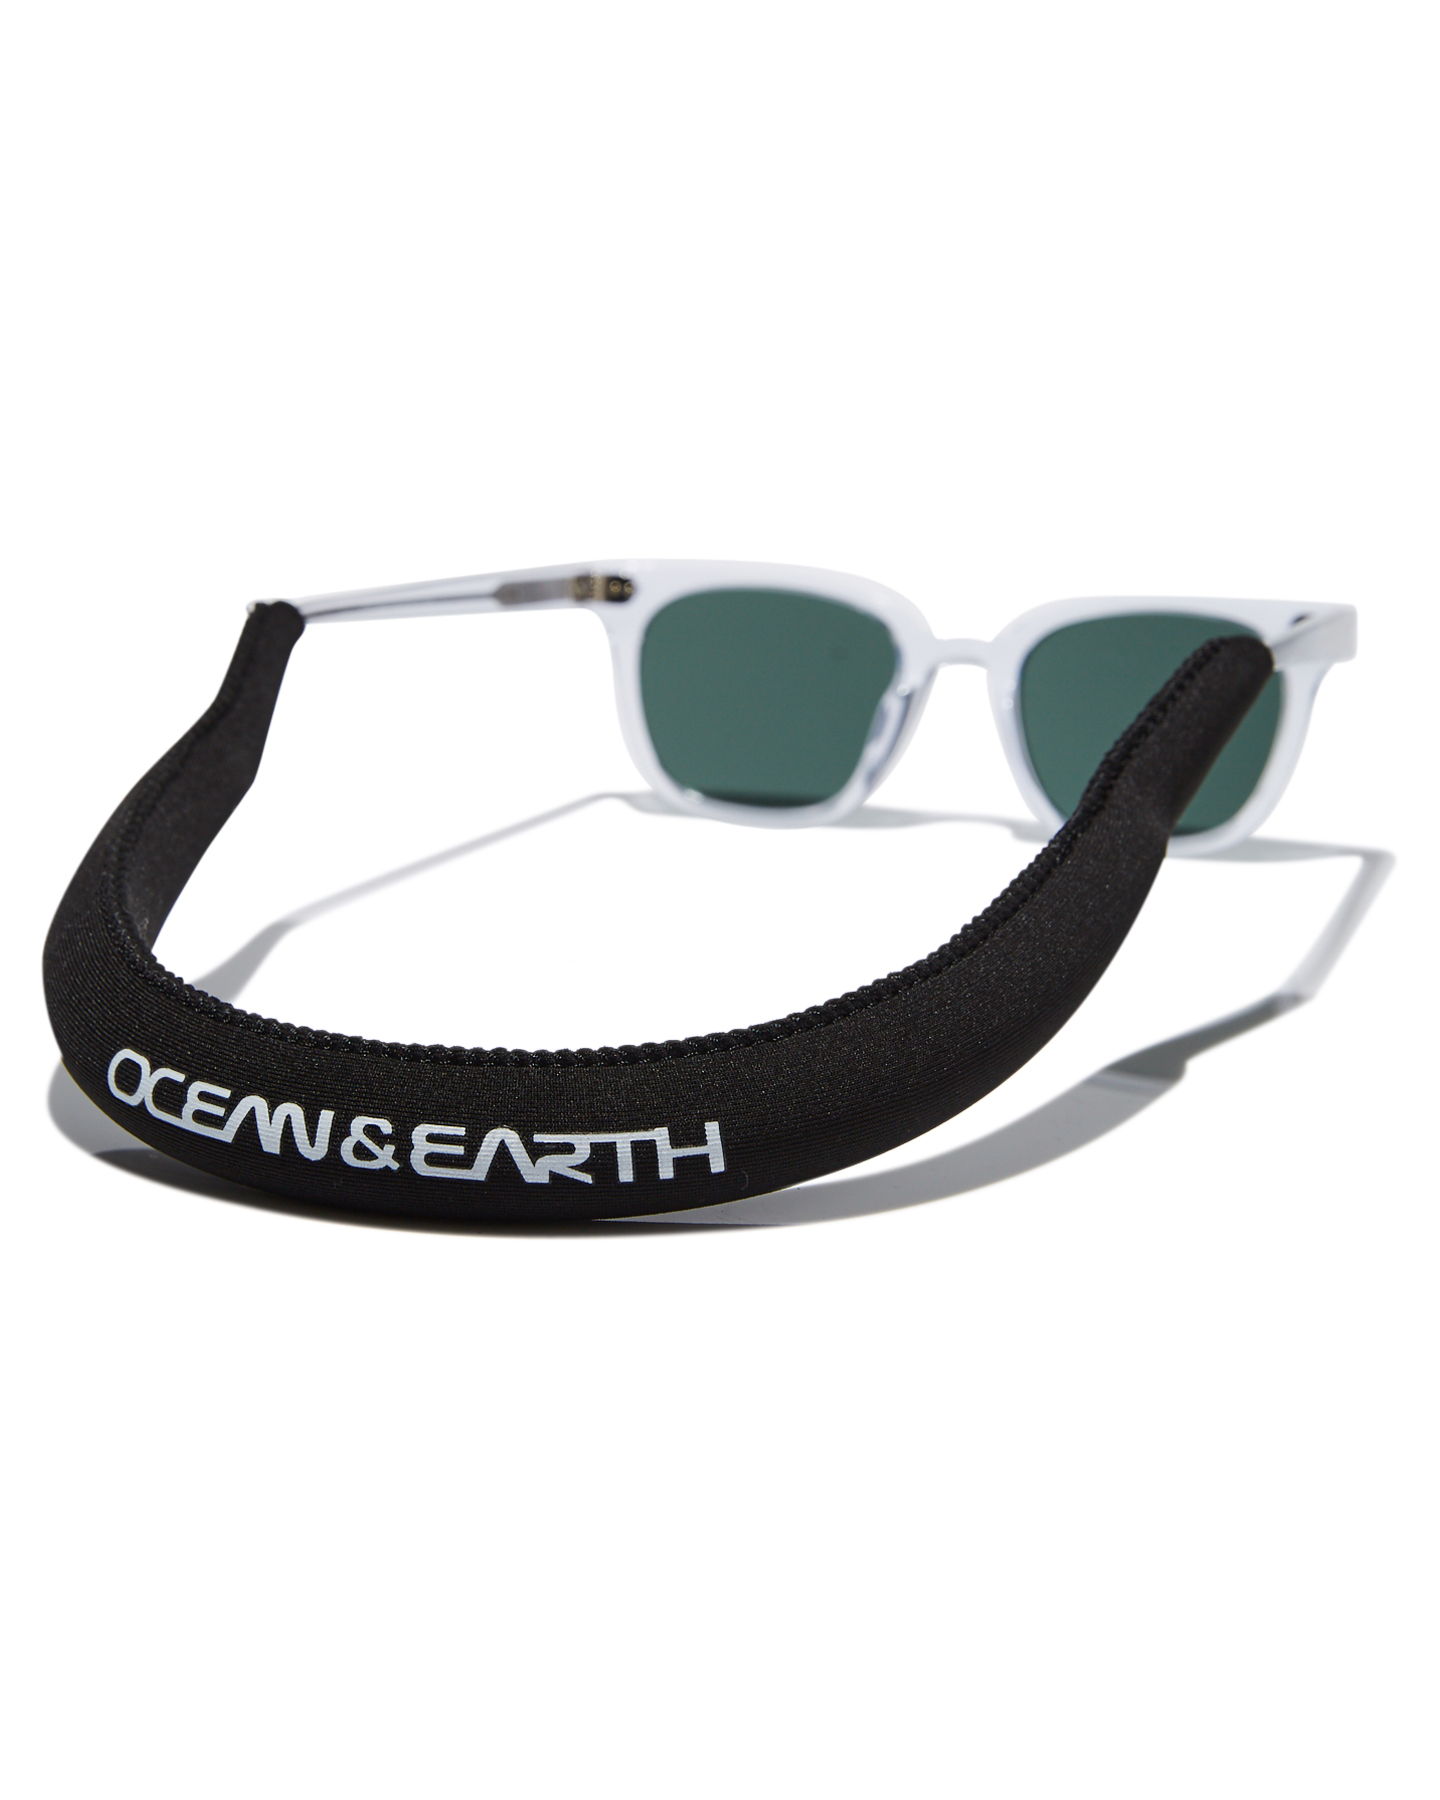 Ocean And Earth Floating Sunnies Strap Black